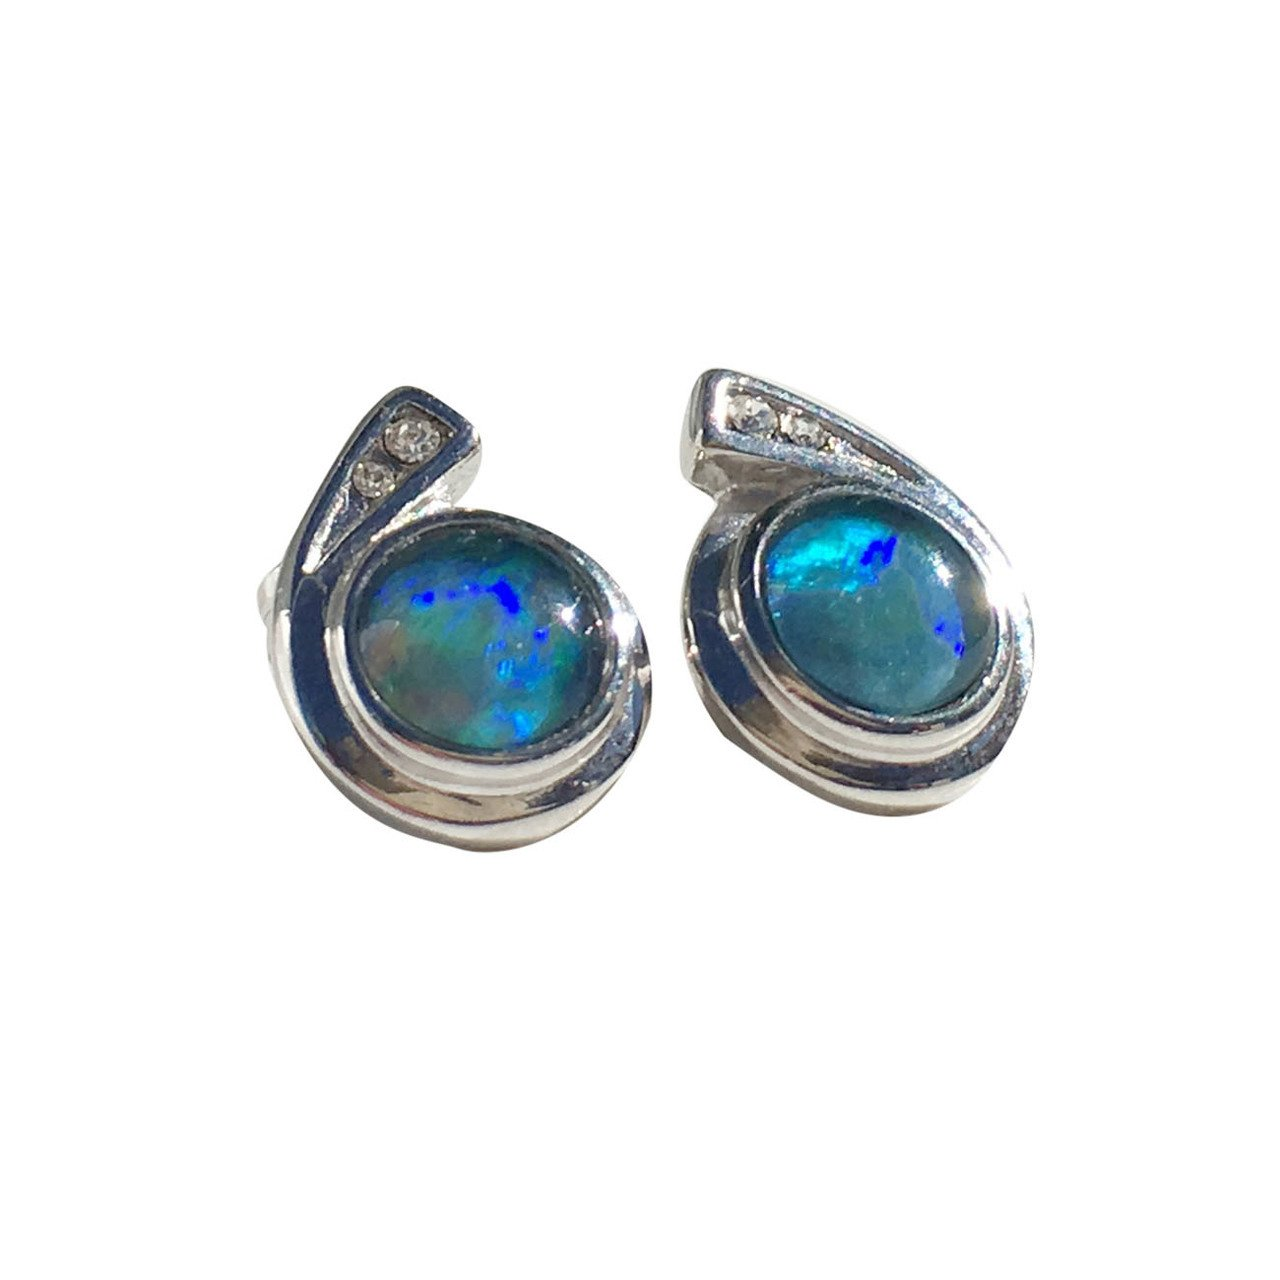 TWINKLE STAR STERLING SILVER OPAL EARRINGS